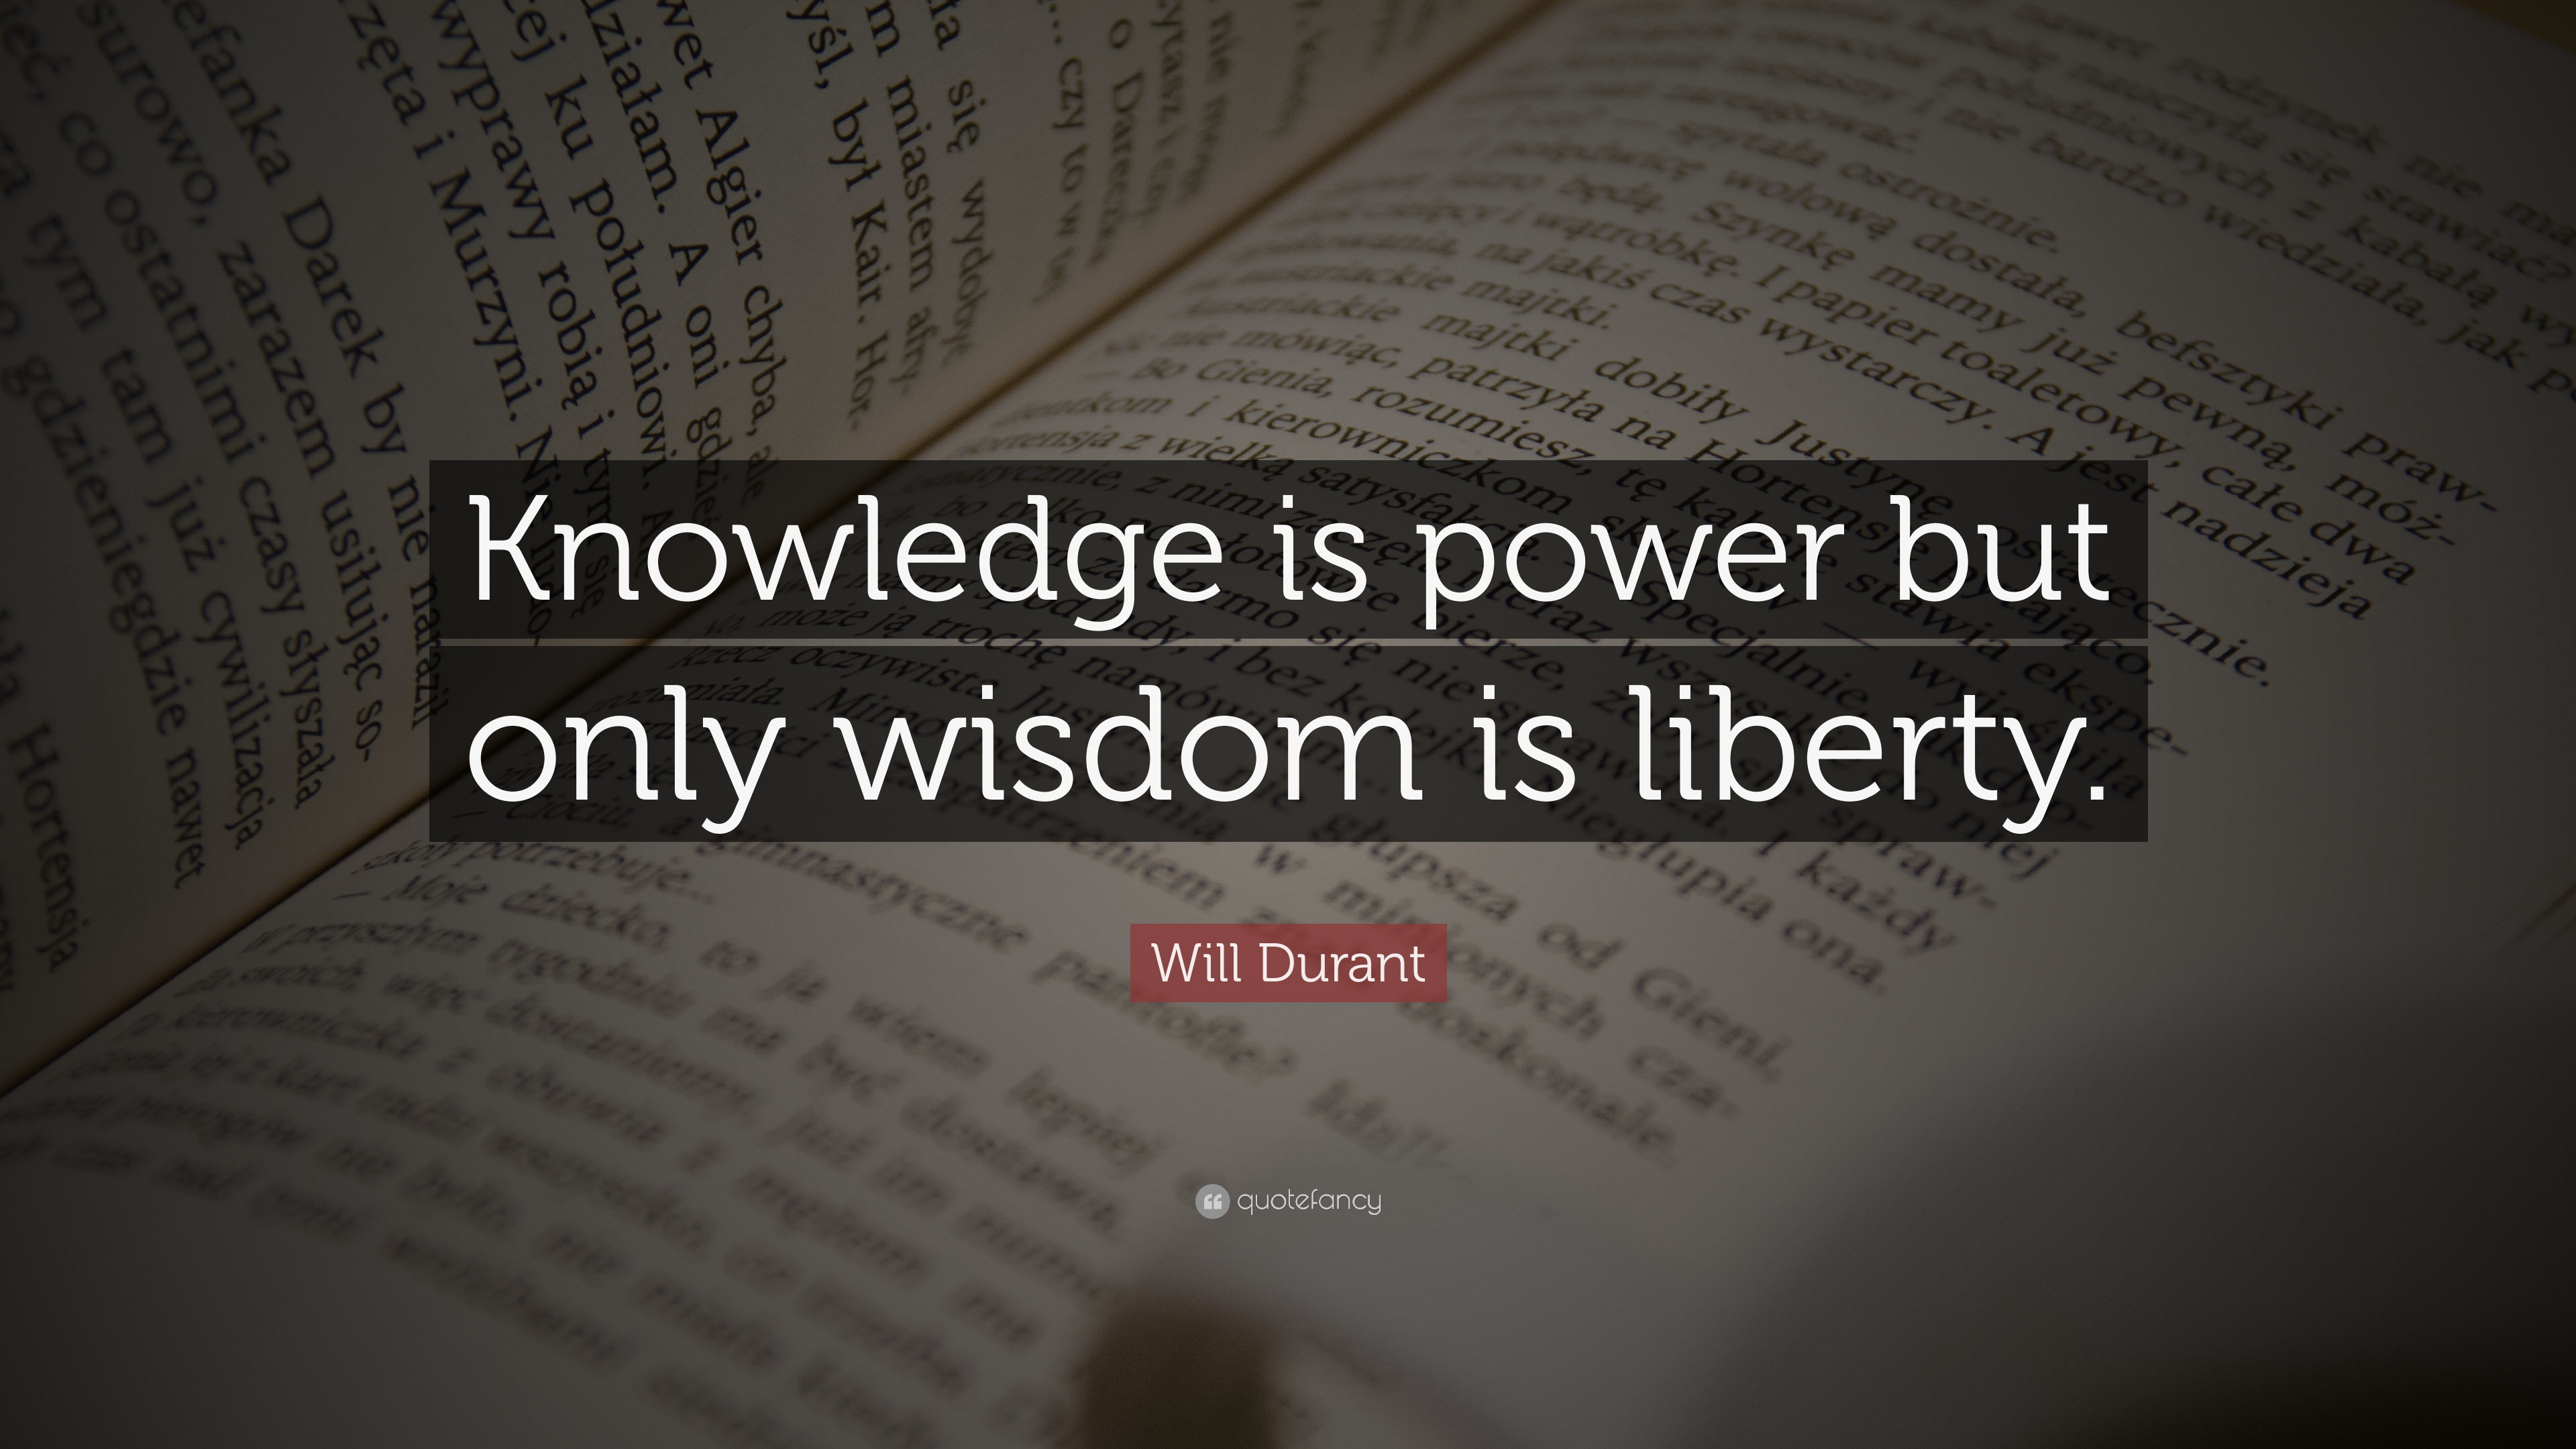 Knowledge Is Power Quote | Will Durant Quote Knowledge Is Power But Only Wisdom Is Liberty